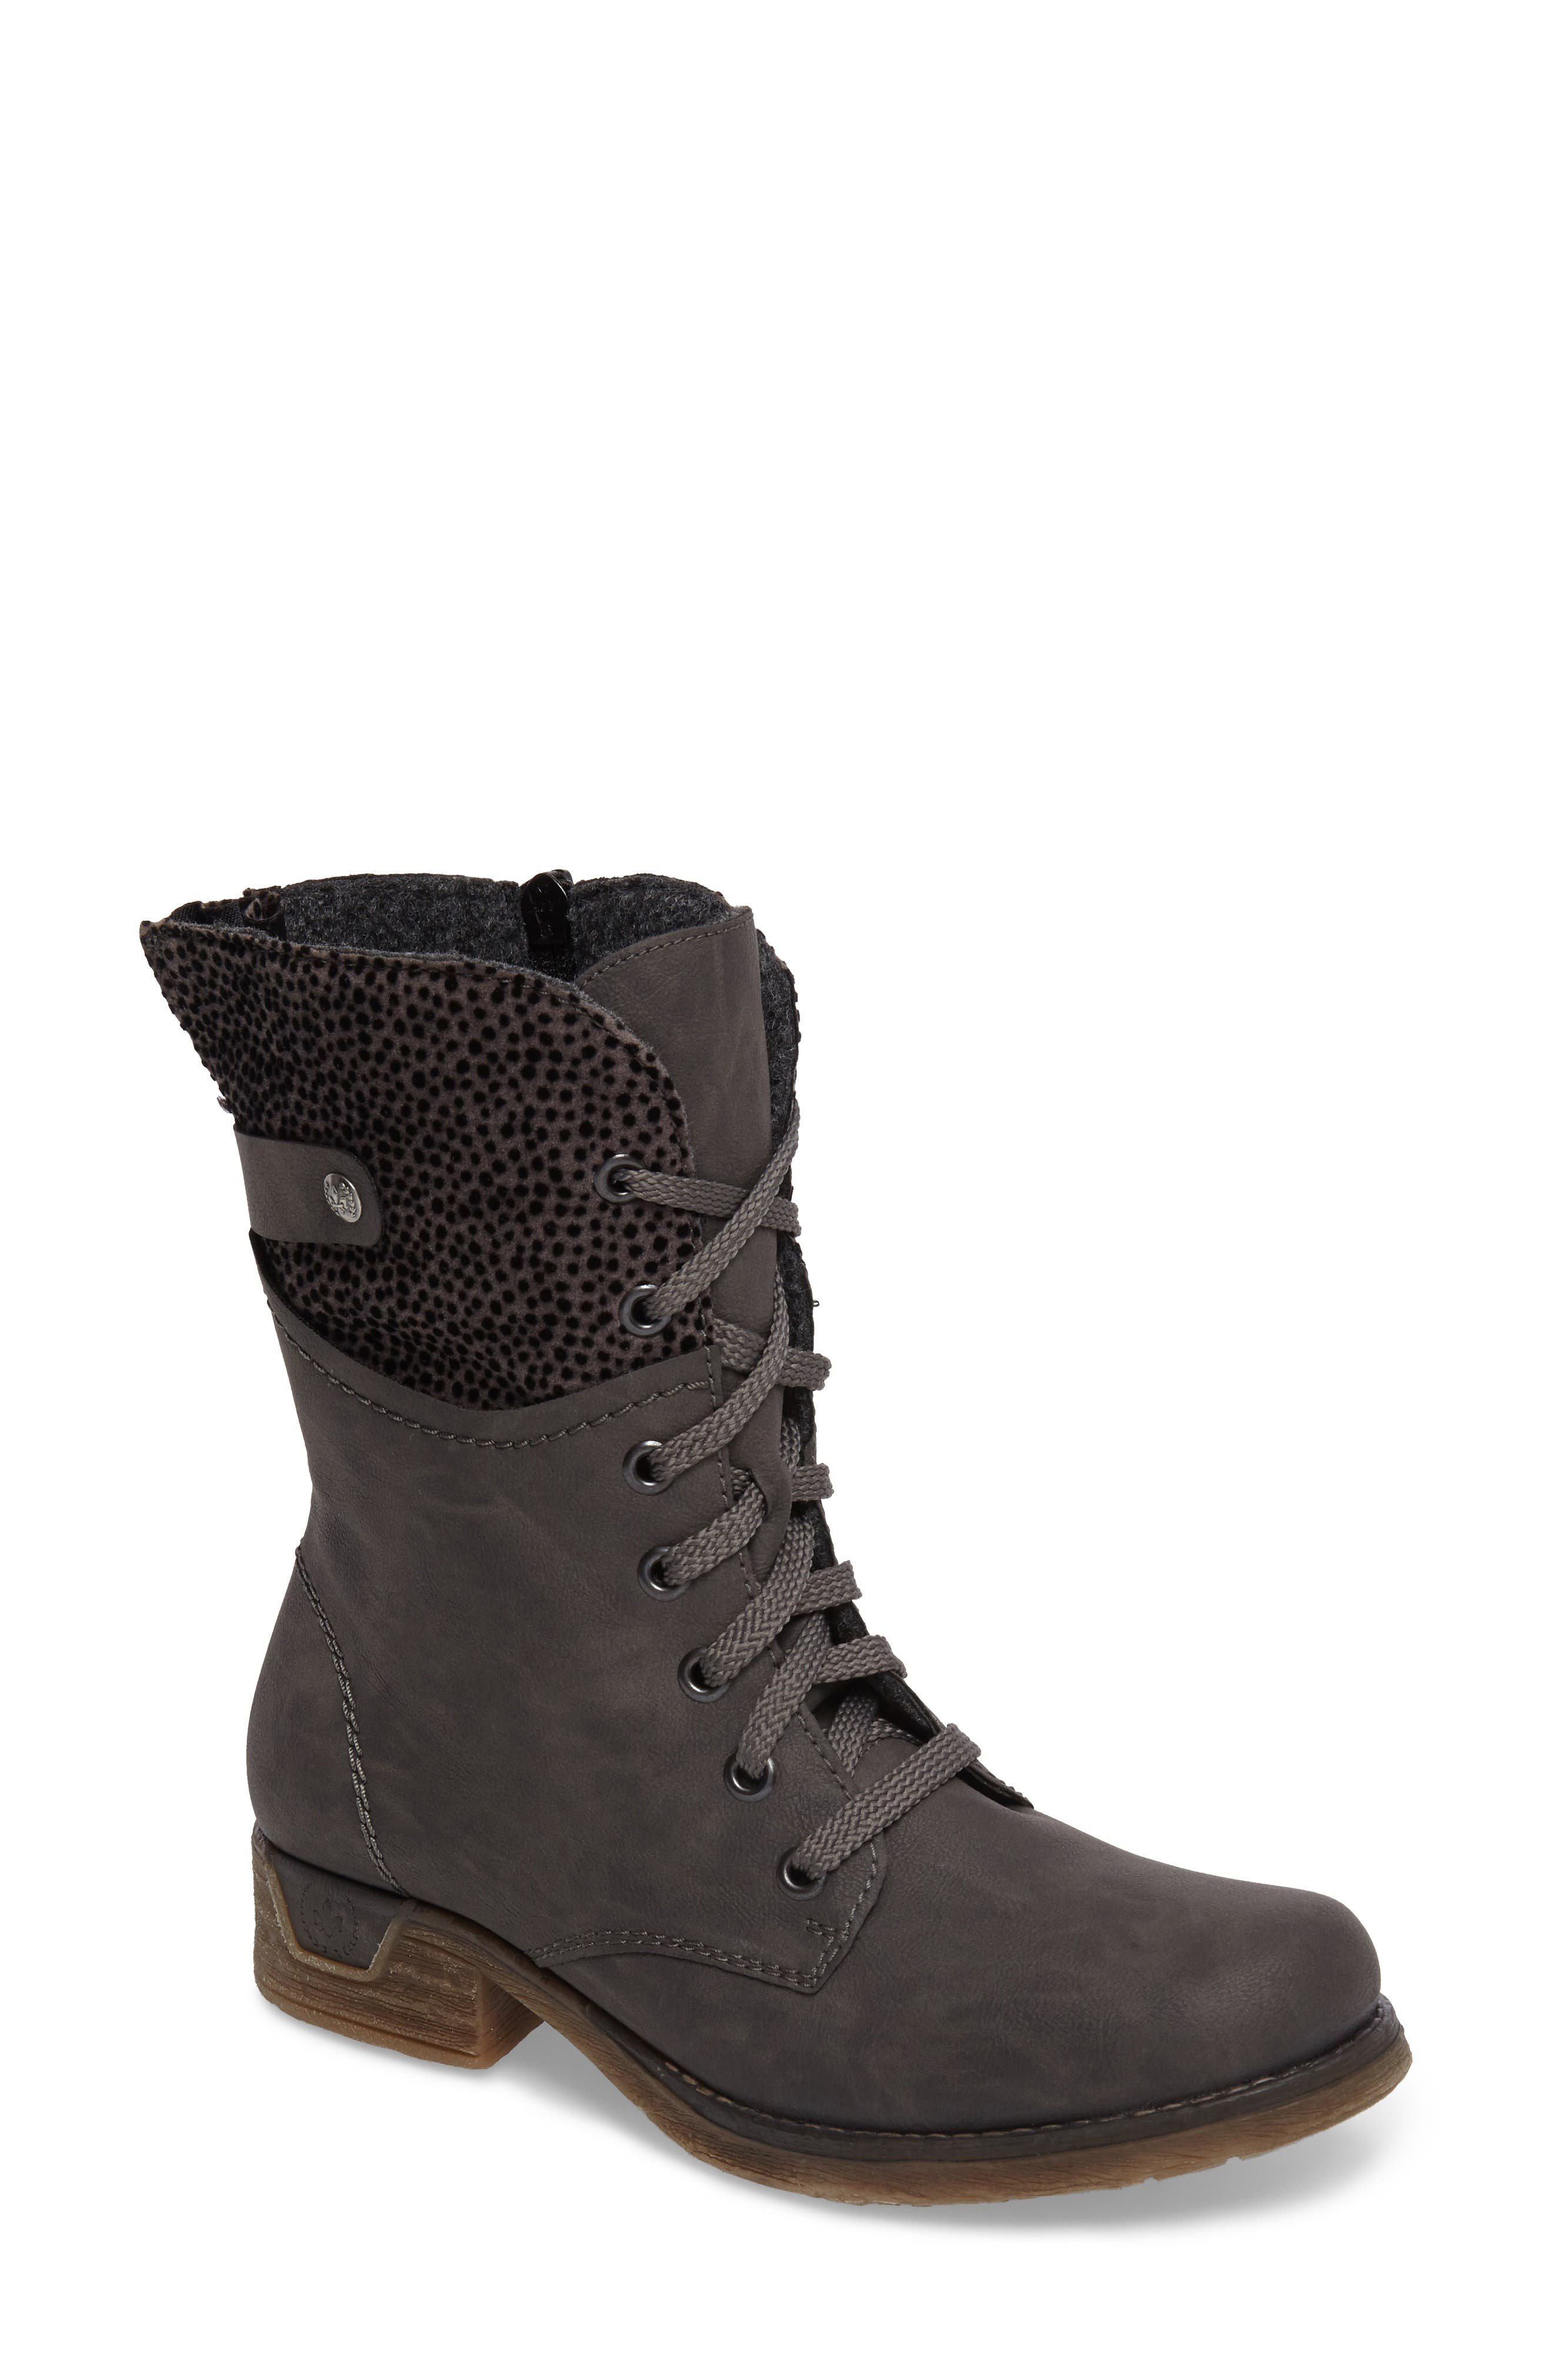 'Fee 04' Lace-Up Boot,                         Main,                         color, FUMO FAUX LEATHER